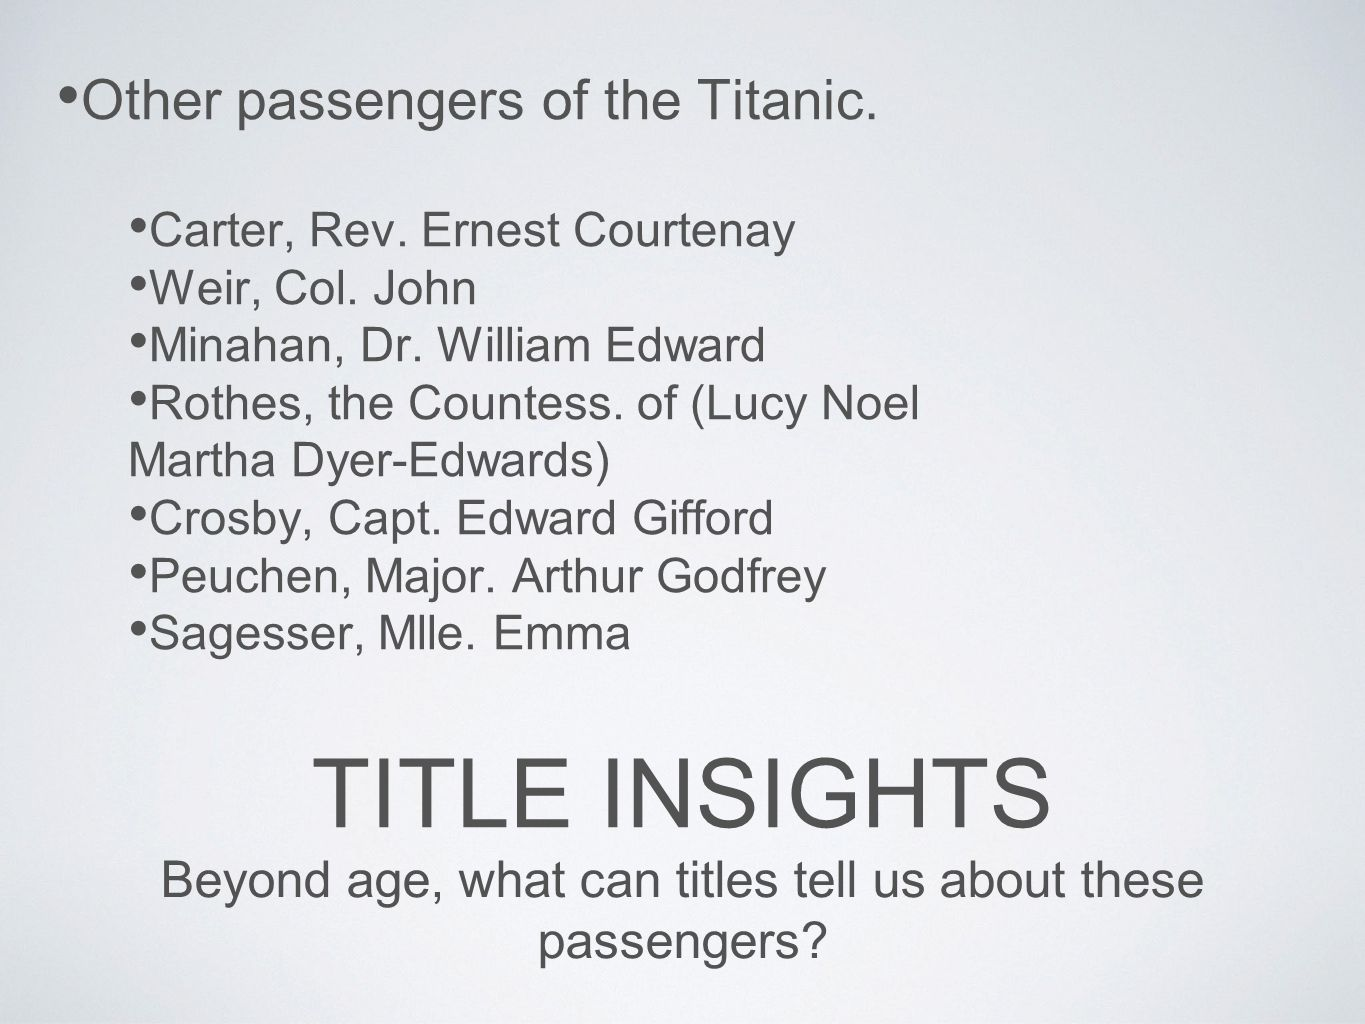 Beyond age, what can titles tell us about these passengers